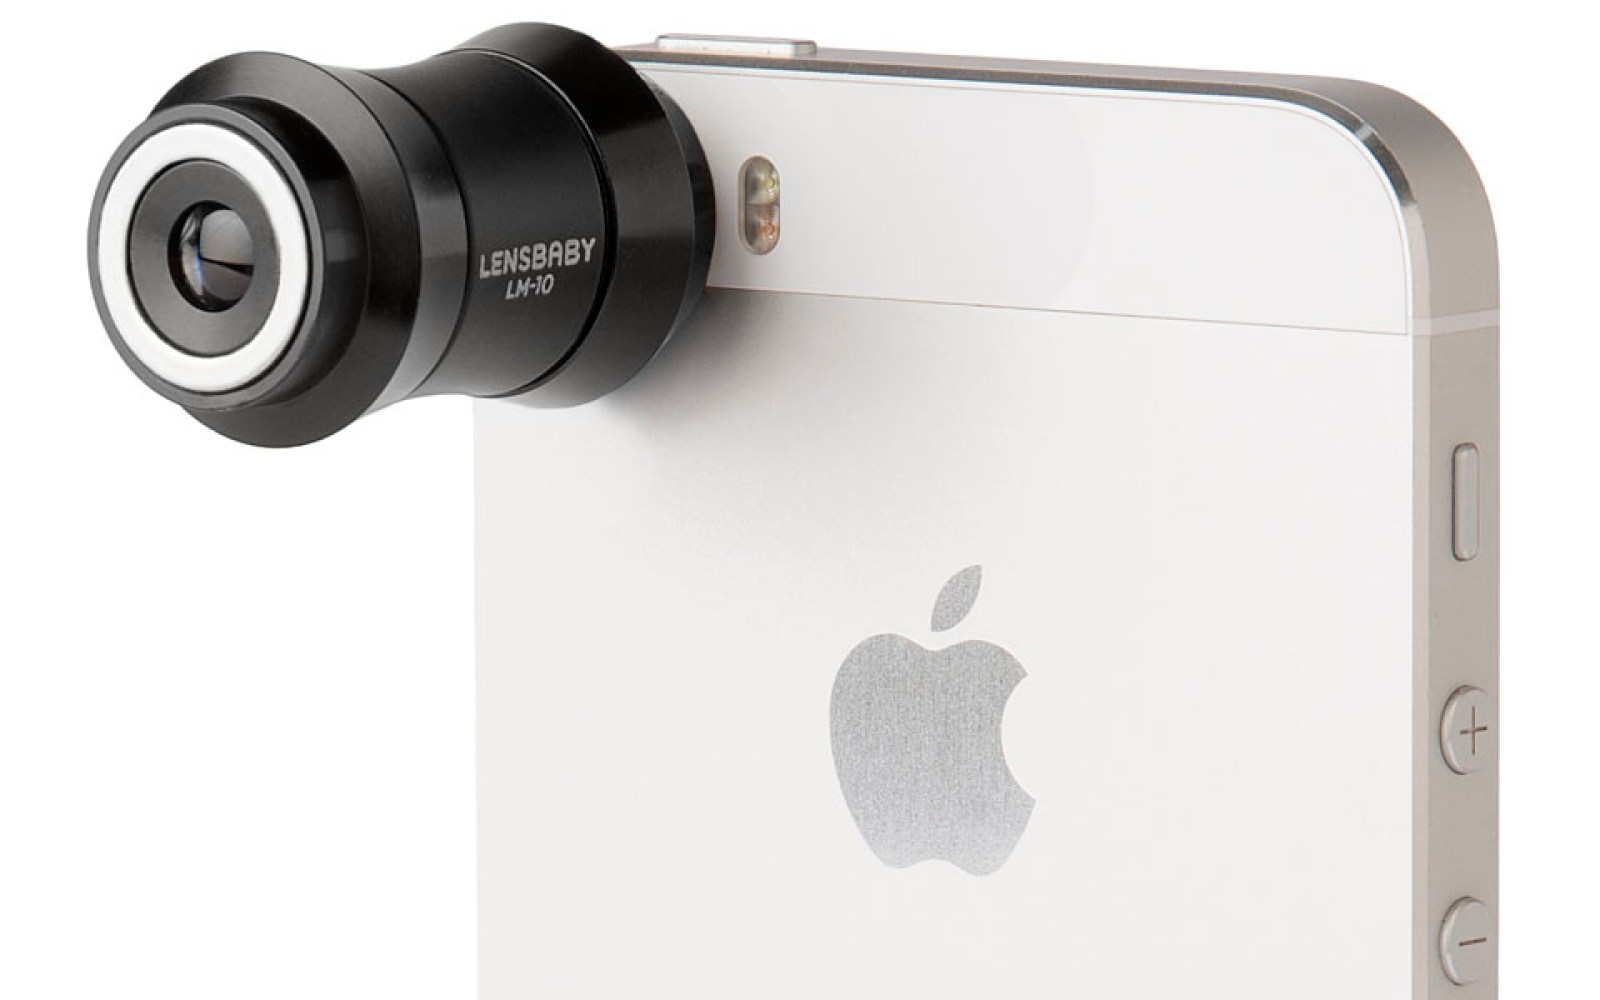 Mini-review: Lensbaby LM-10, a fun if pricey accessory for iPhonography fans